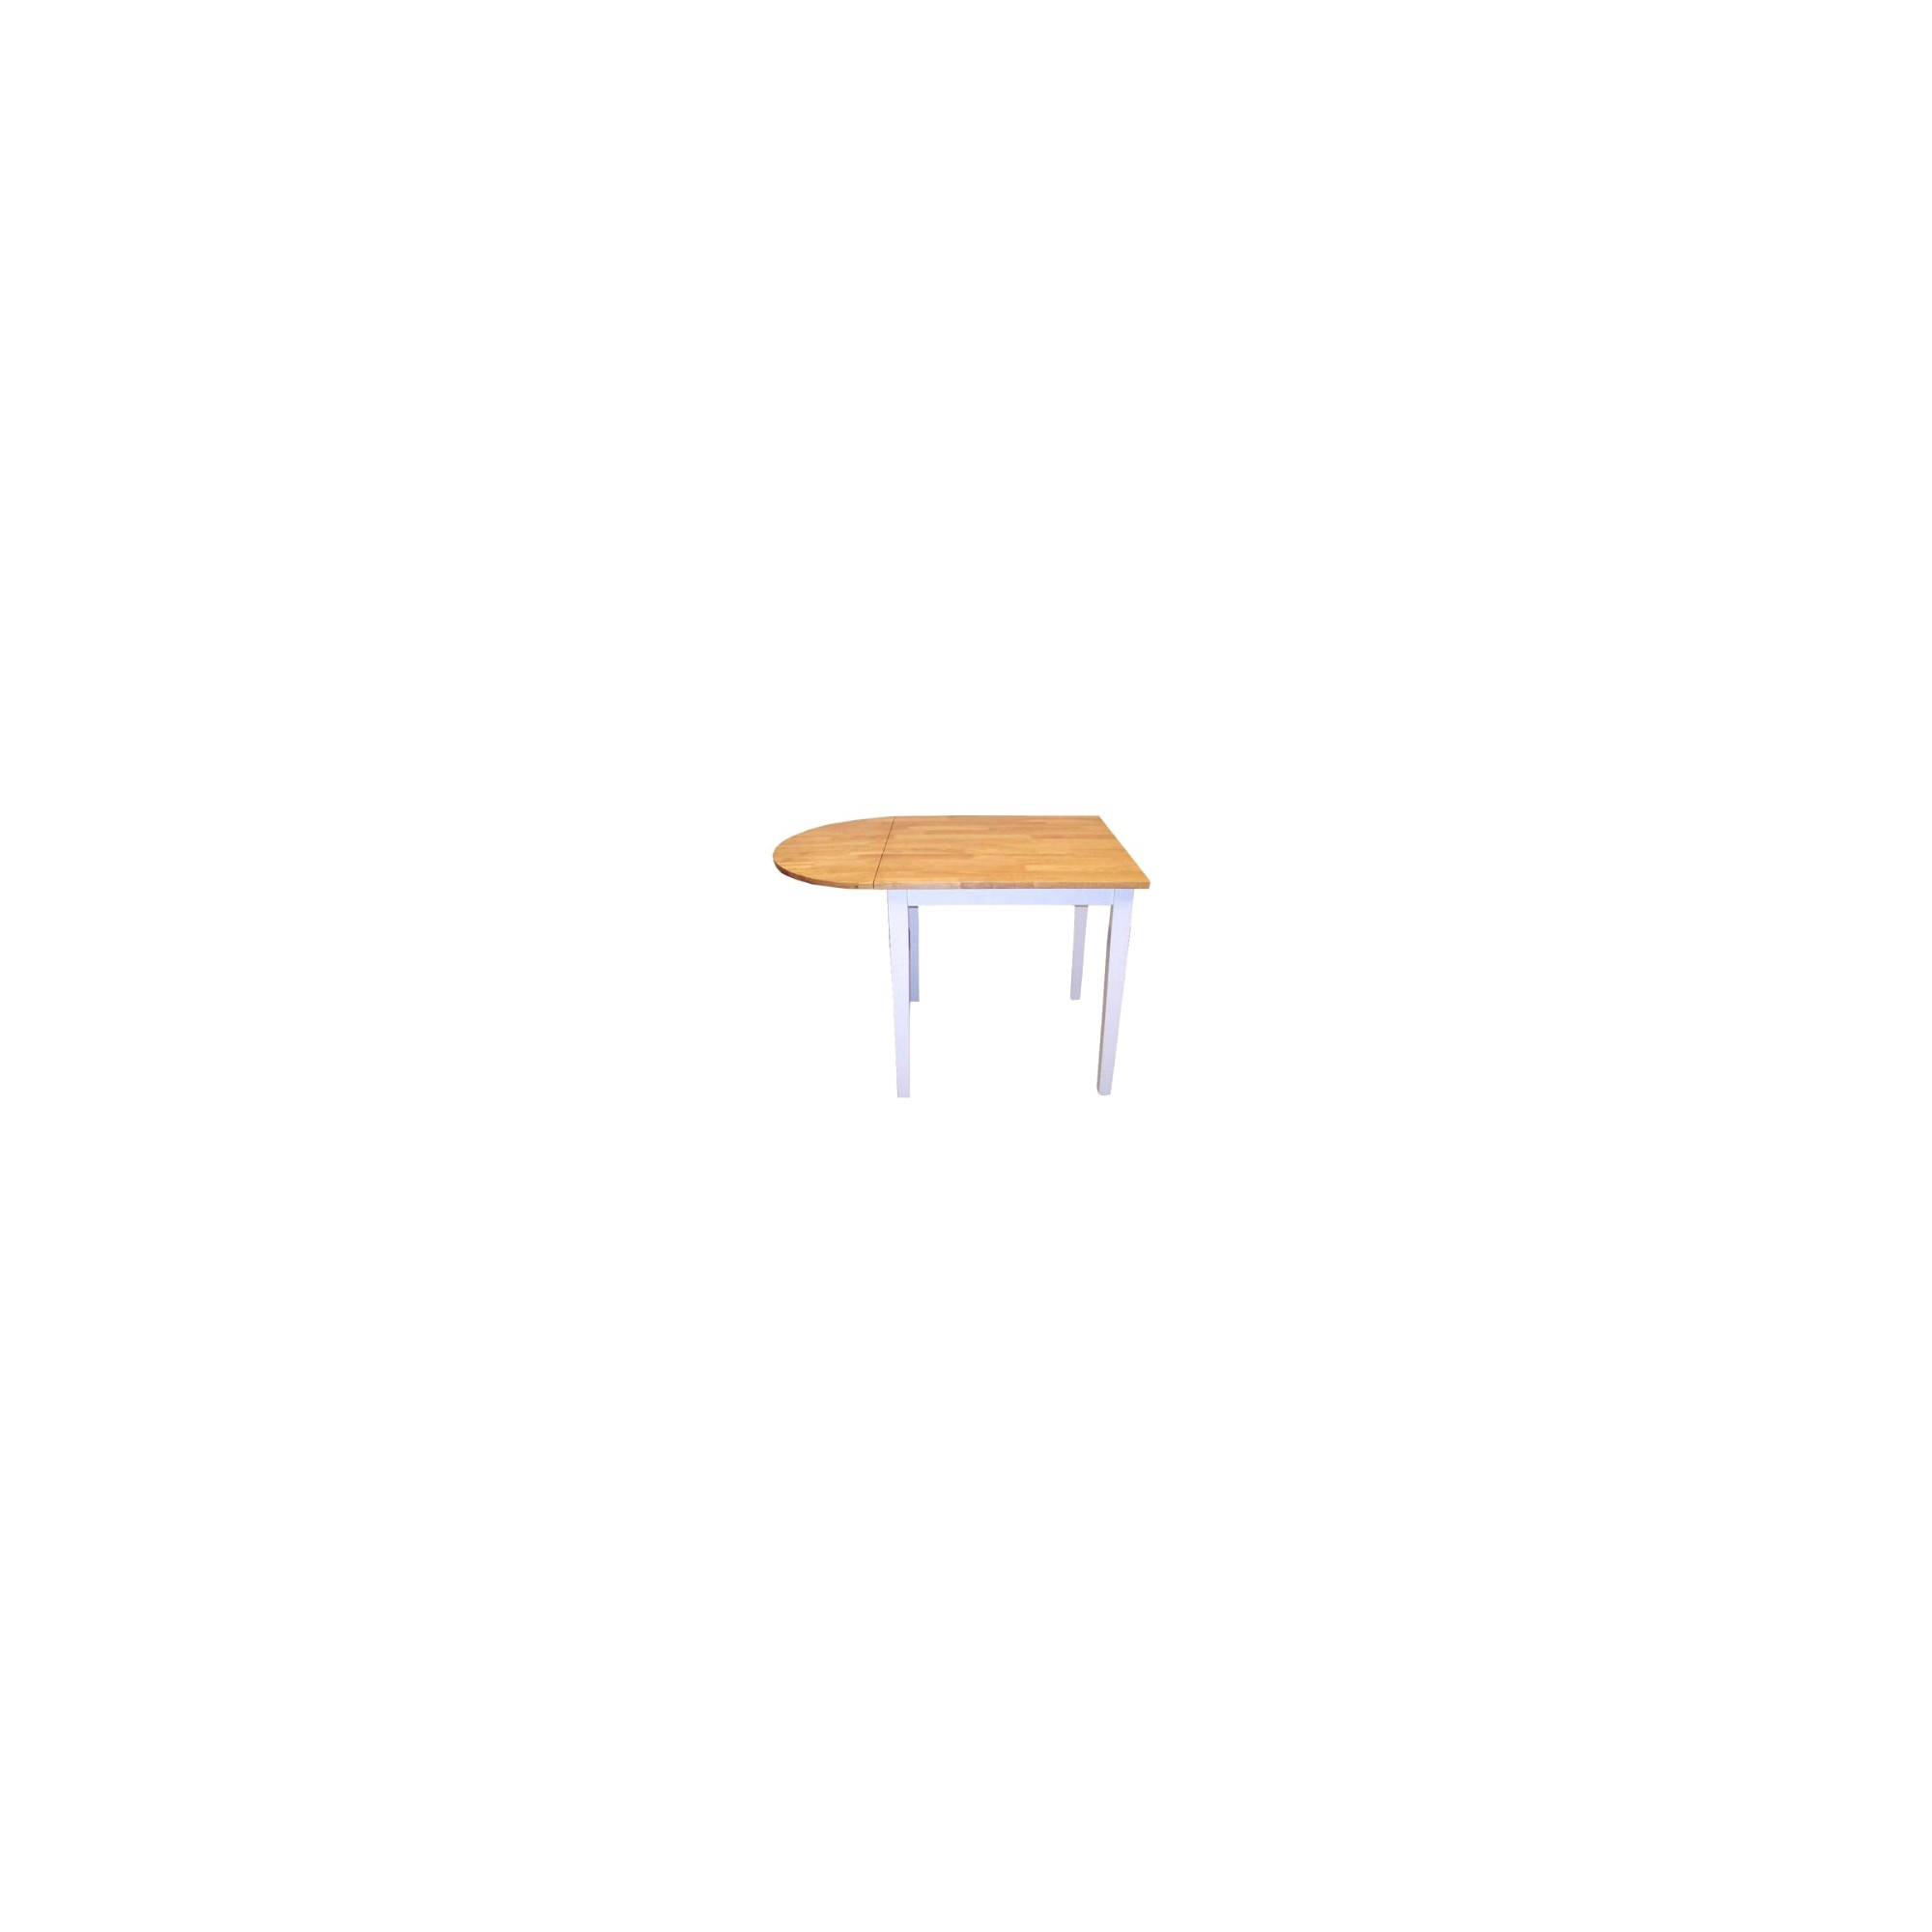 Tiffany Drop-Leaf Table Wood/Natural/White - TMS